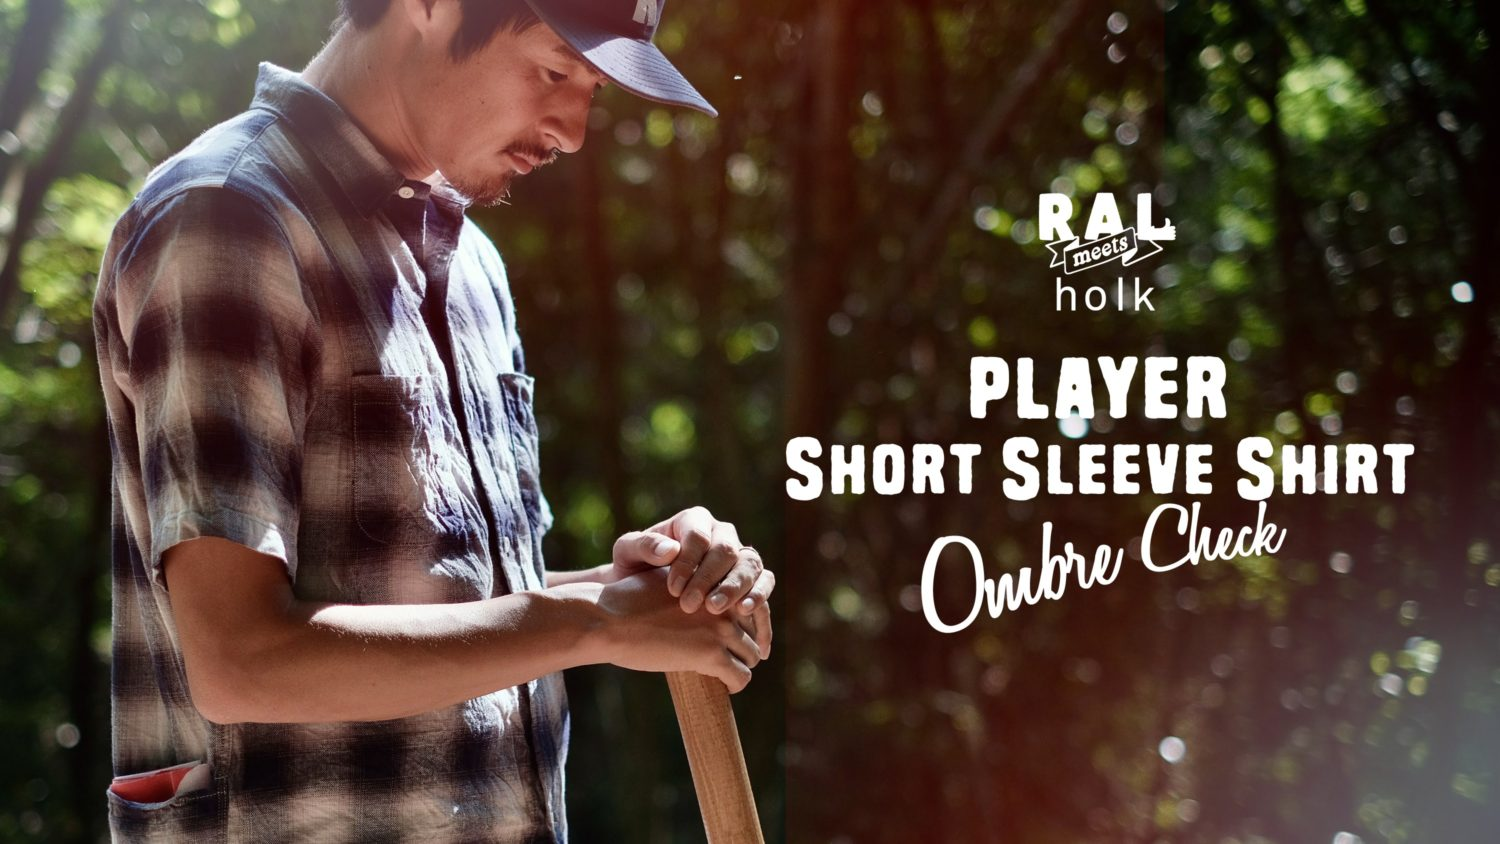 RAL meets holk / Player Short Sleeve Shirt Ombre Check